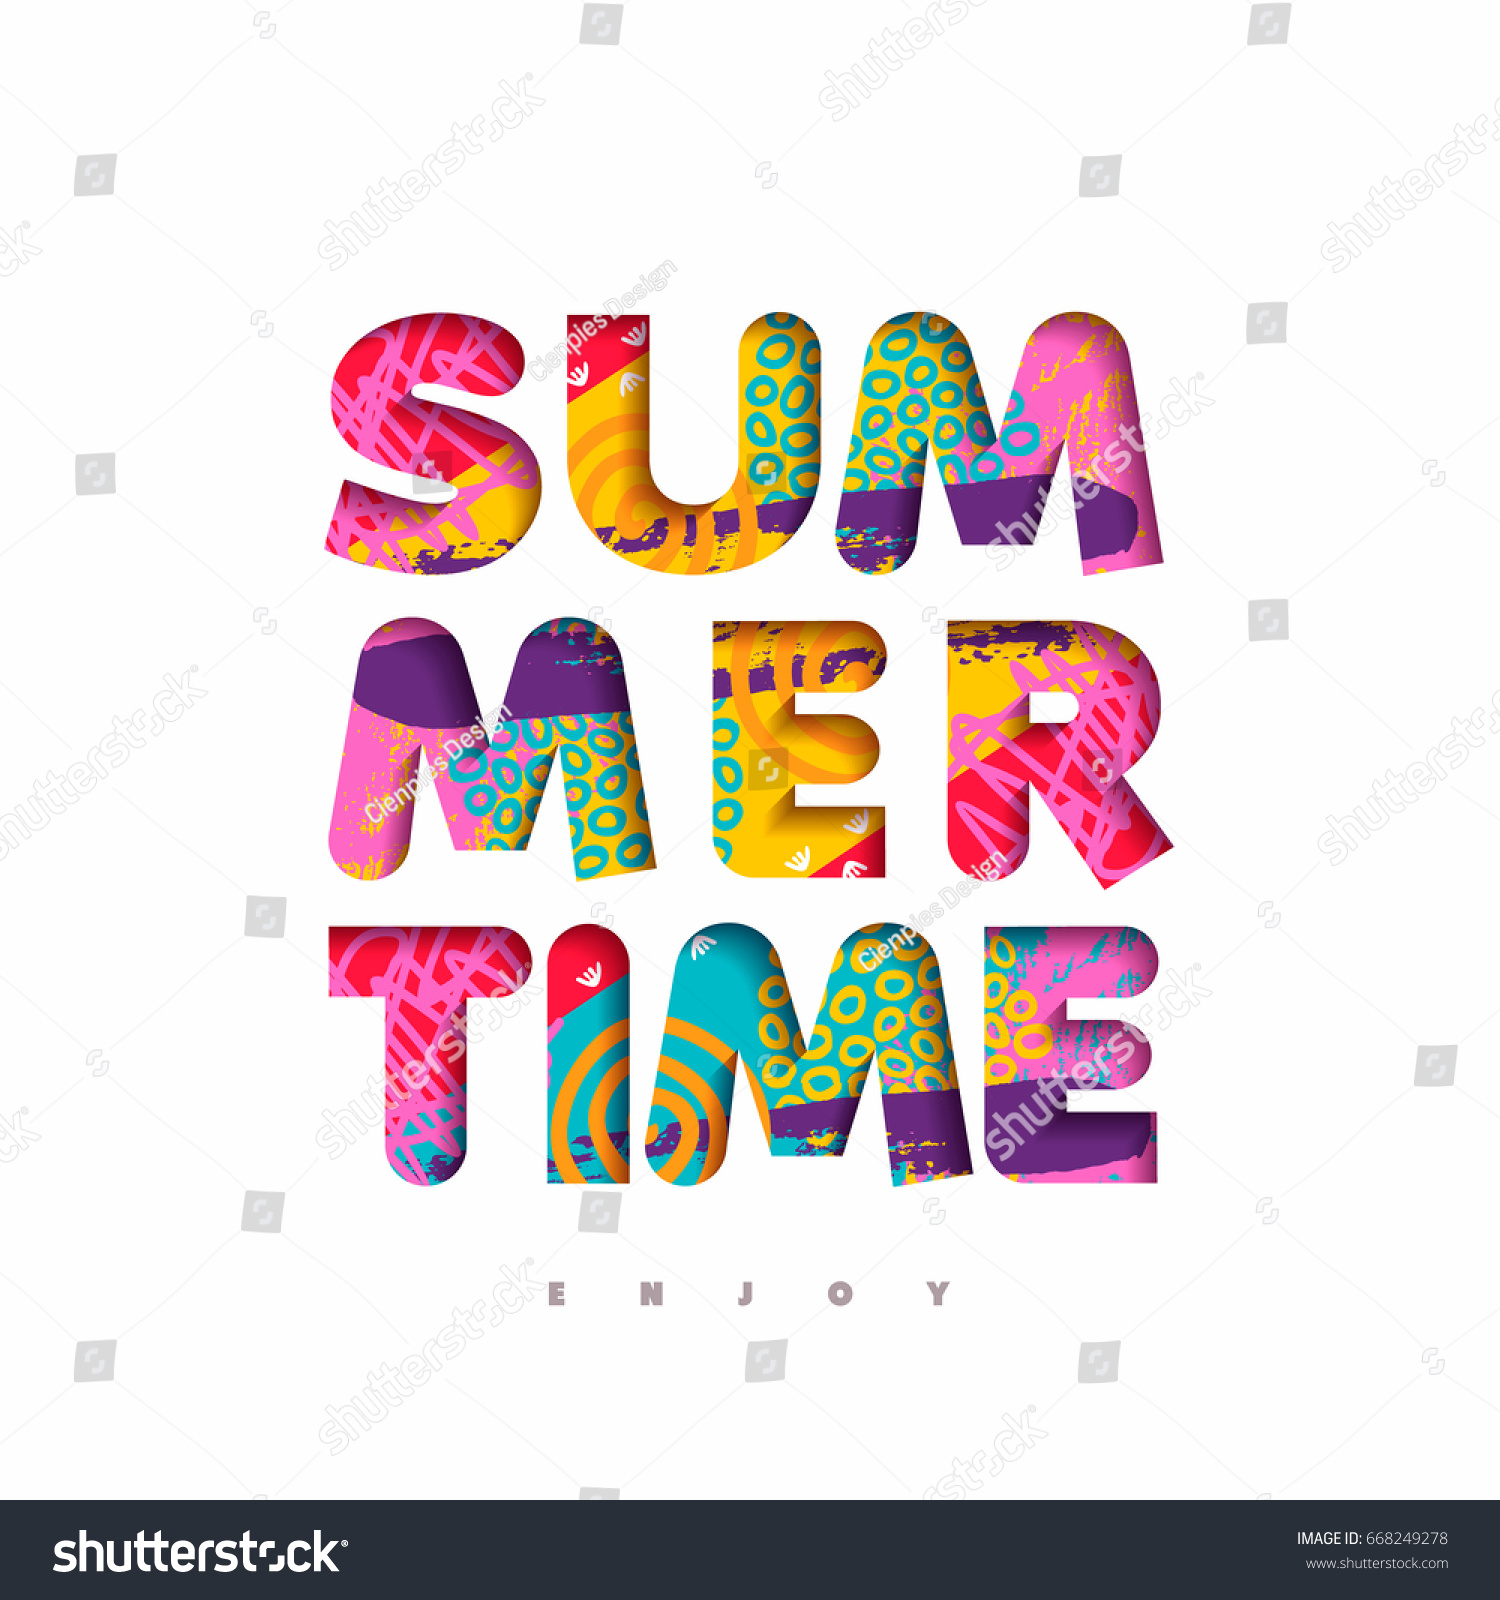 Stock illustration 3d red text quot yes quot stock illustration royalty -  Vectors Illustrations Footage Music Enjoy Summertime Season Vibrant Color Quote Typography Design In 3d Paper Cut Style Fun